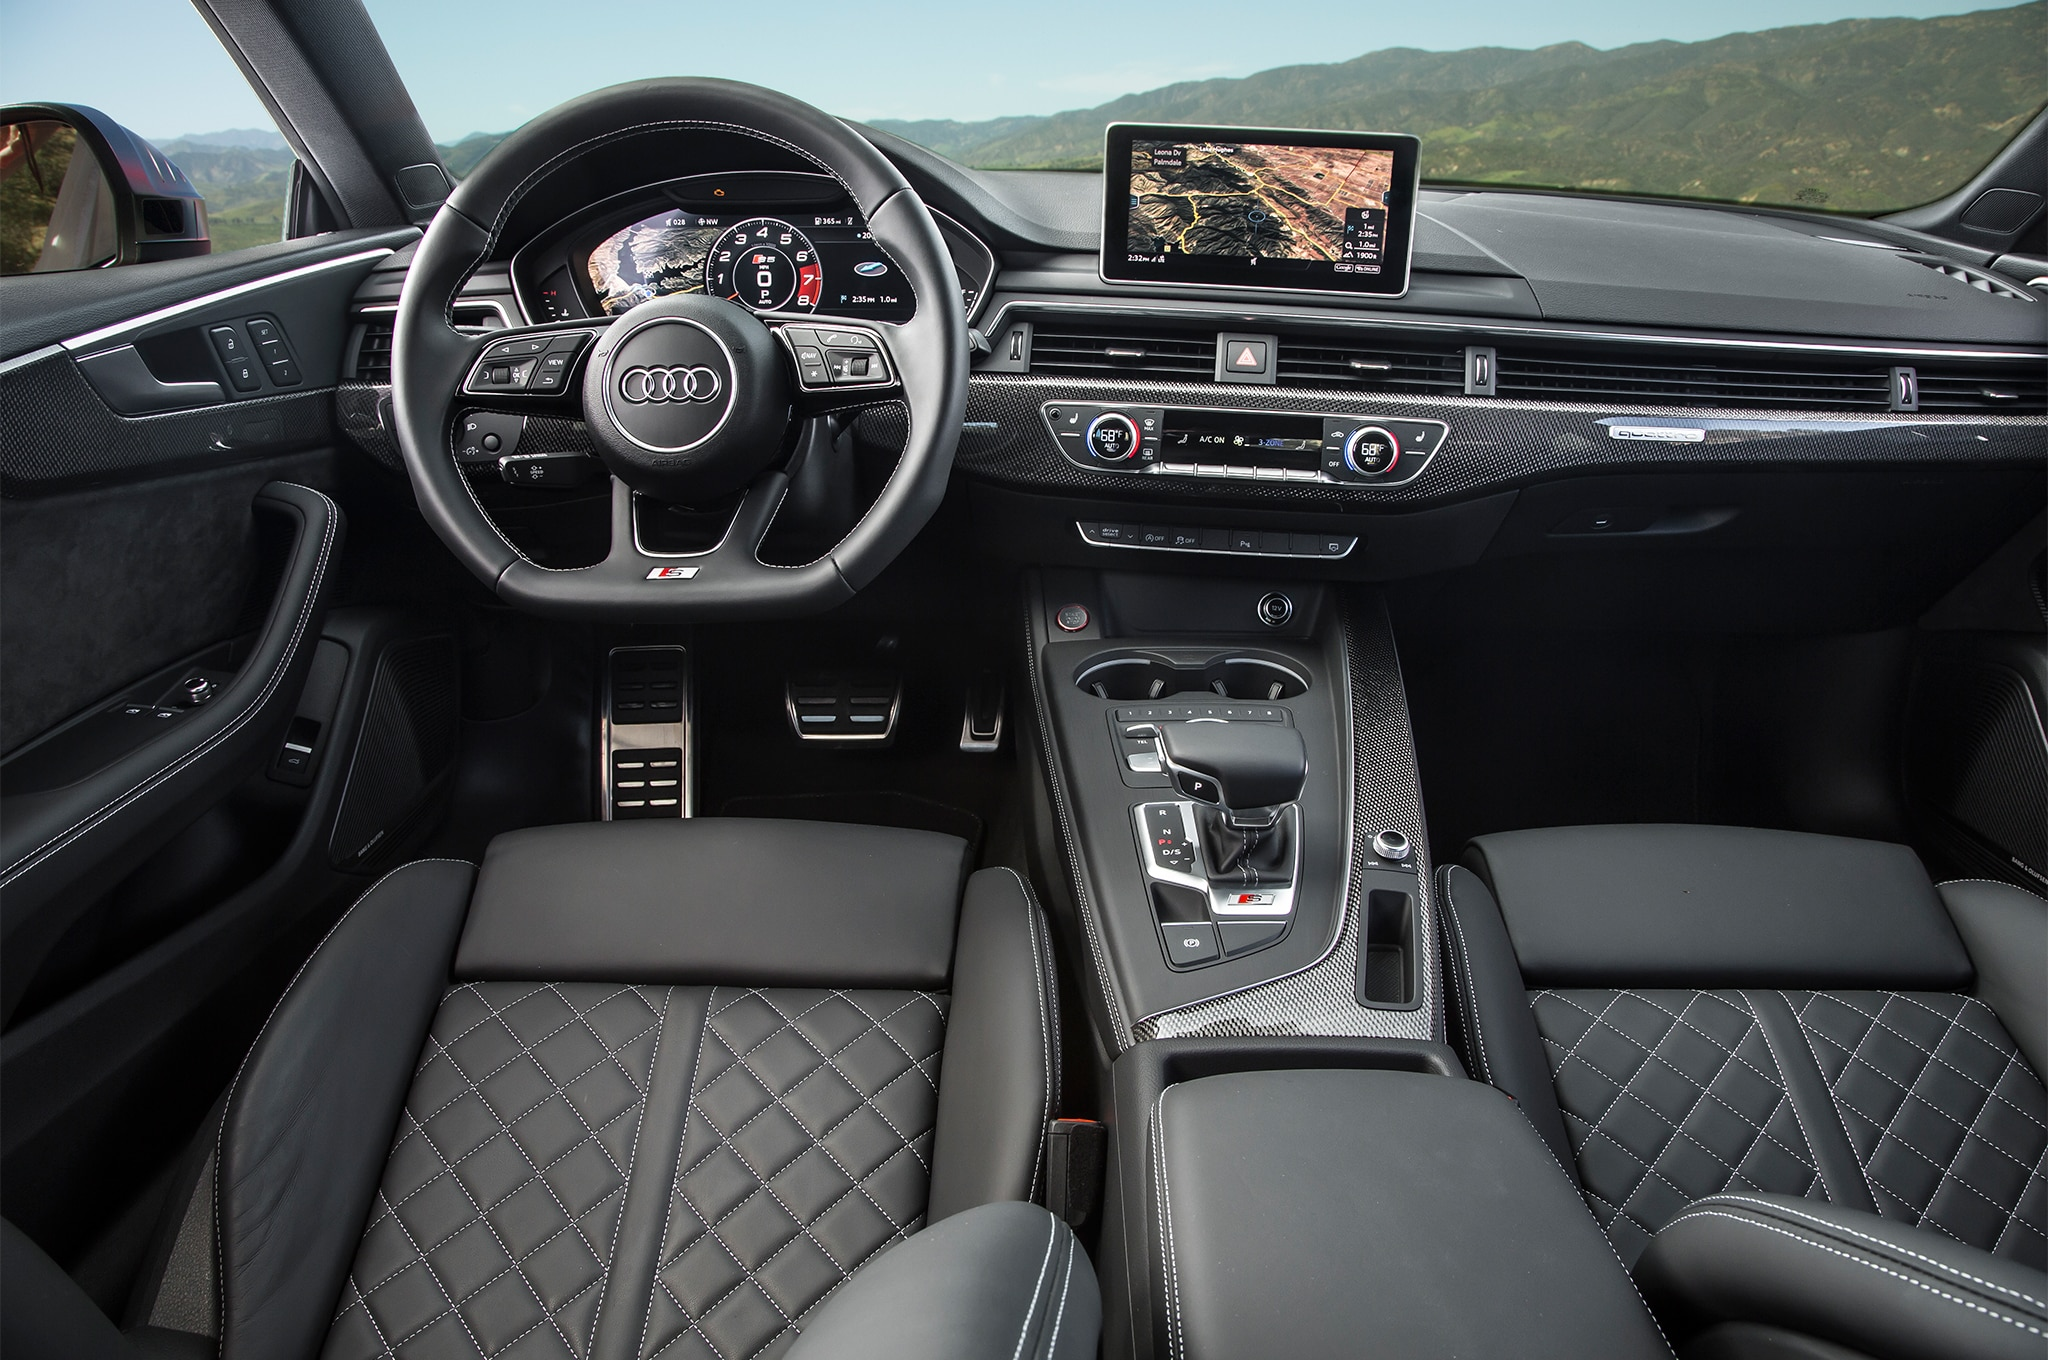 Audi S Coupe First Drive Review Automobile Magazine - Audi s5 2018